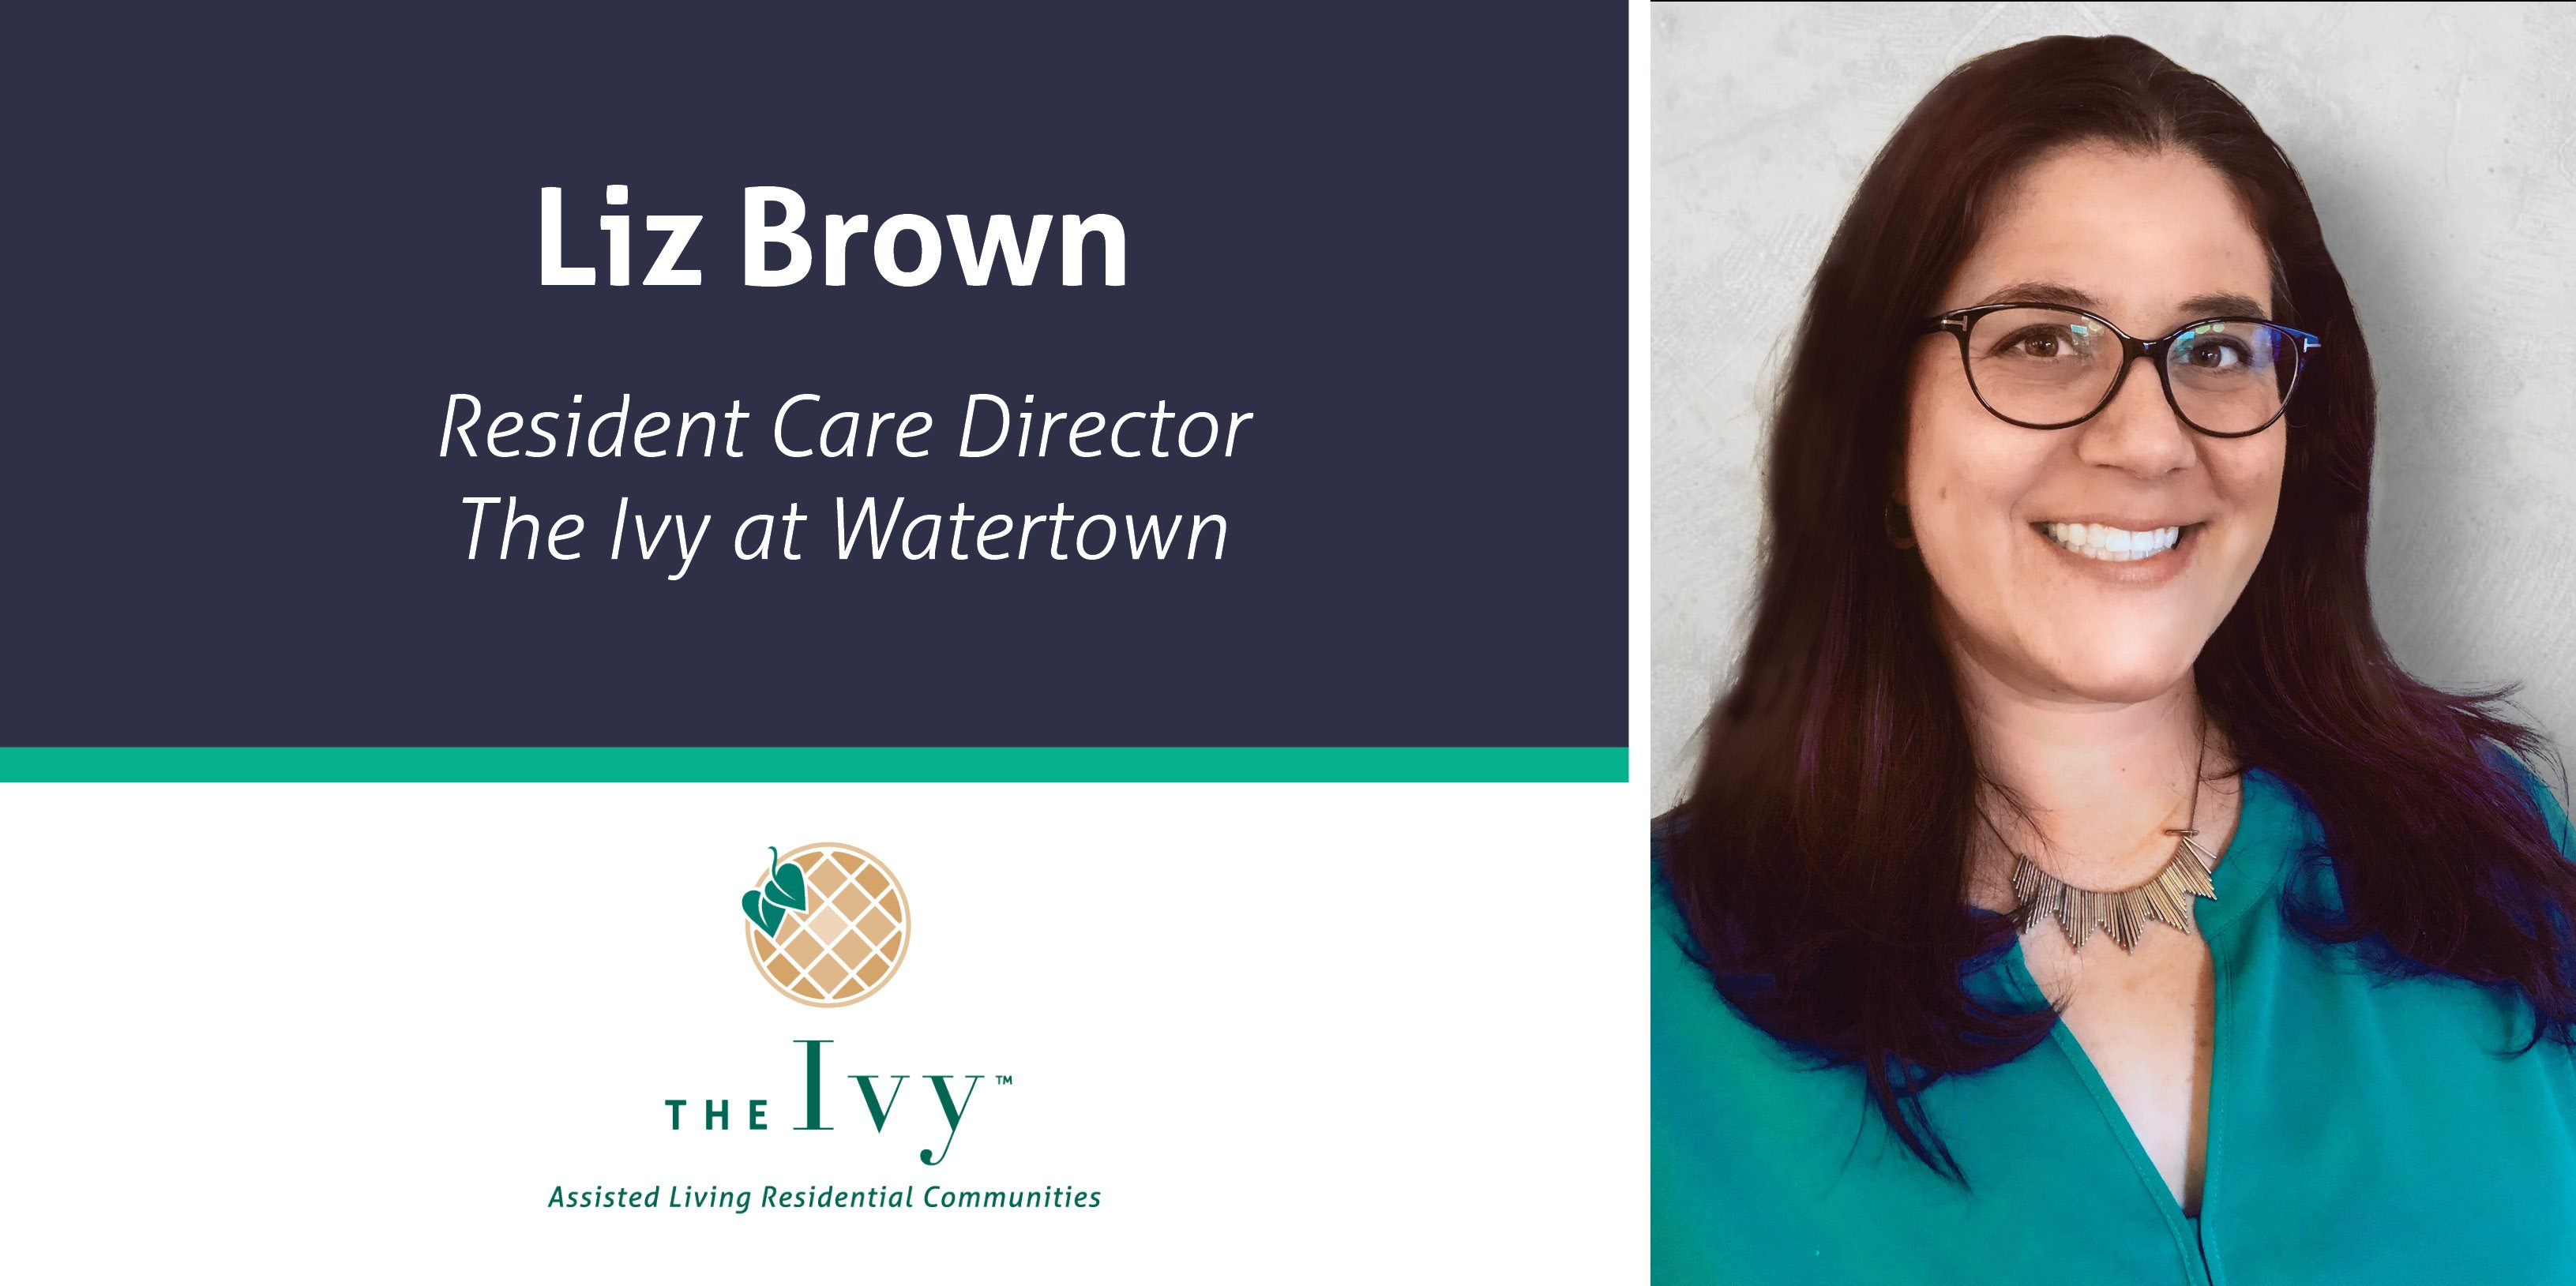 Meet Liz Brown, the Resident Care Director of The Ivy at Watertown